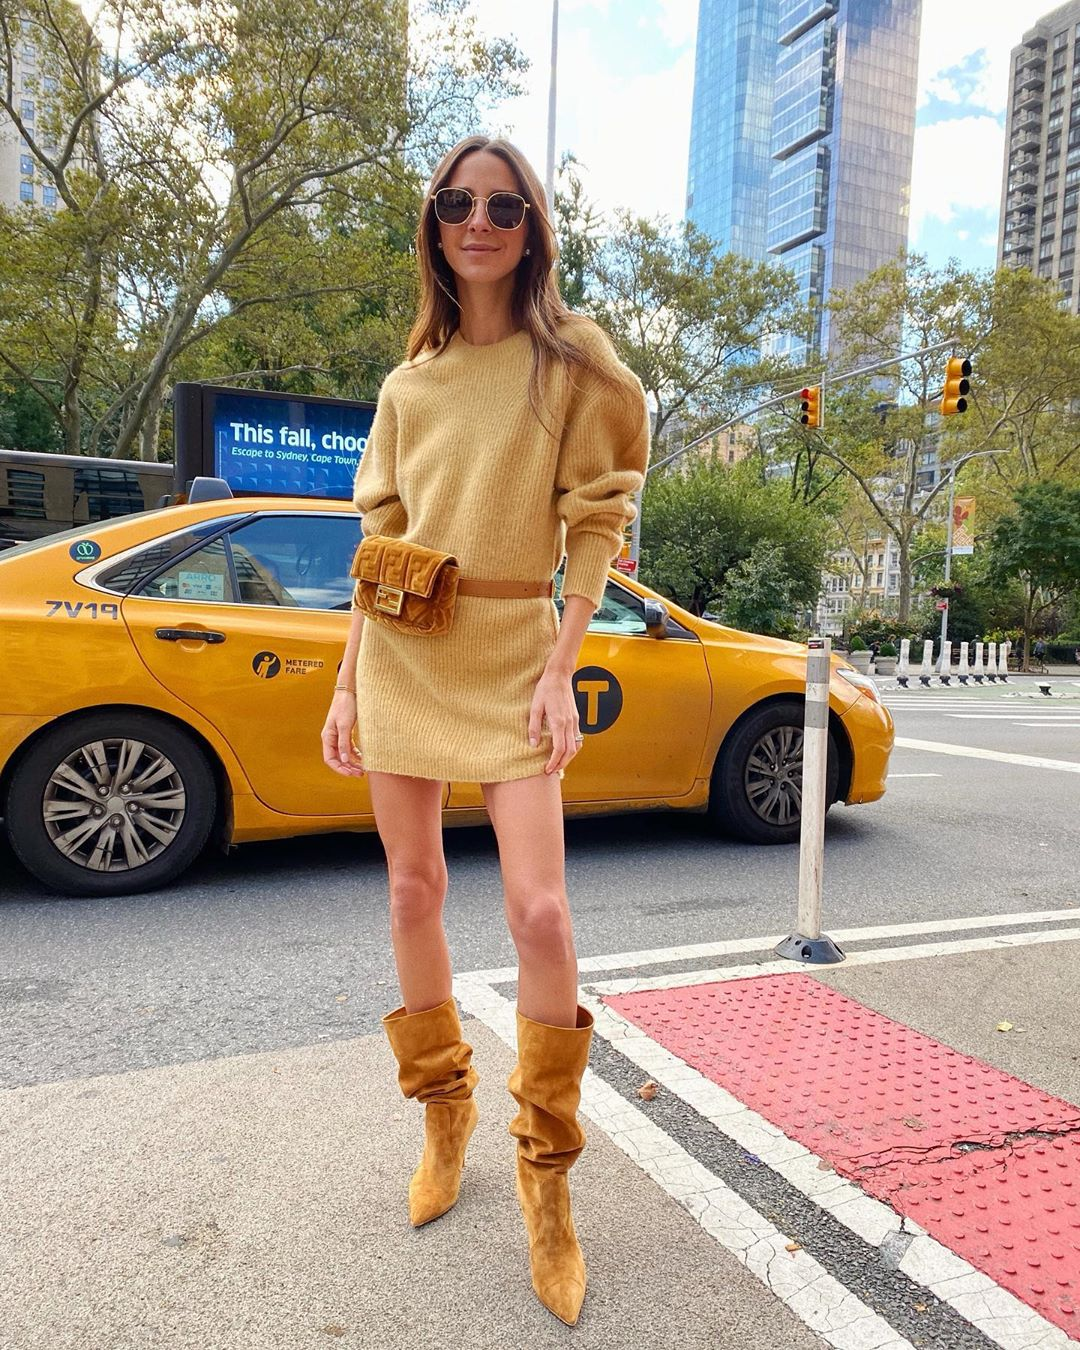 Sweater Dresses Are Key For an Easy, Chic Fall Outfit